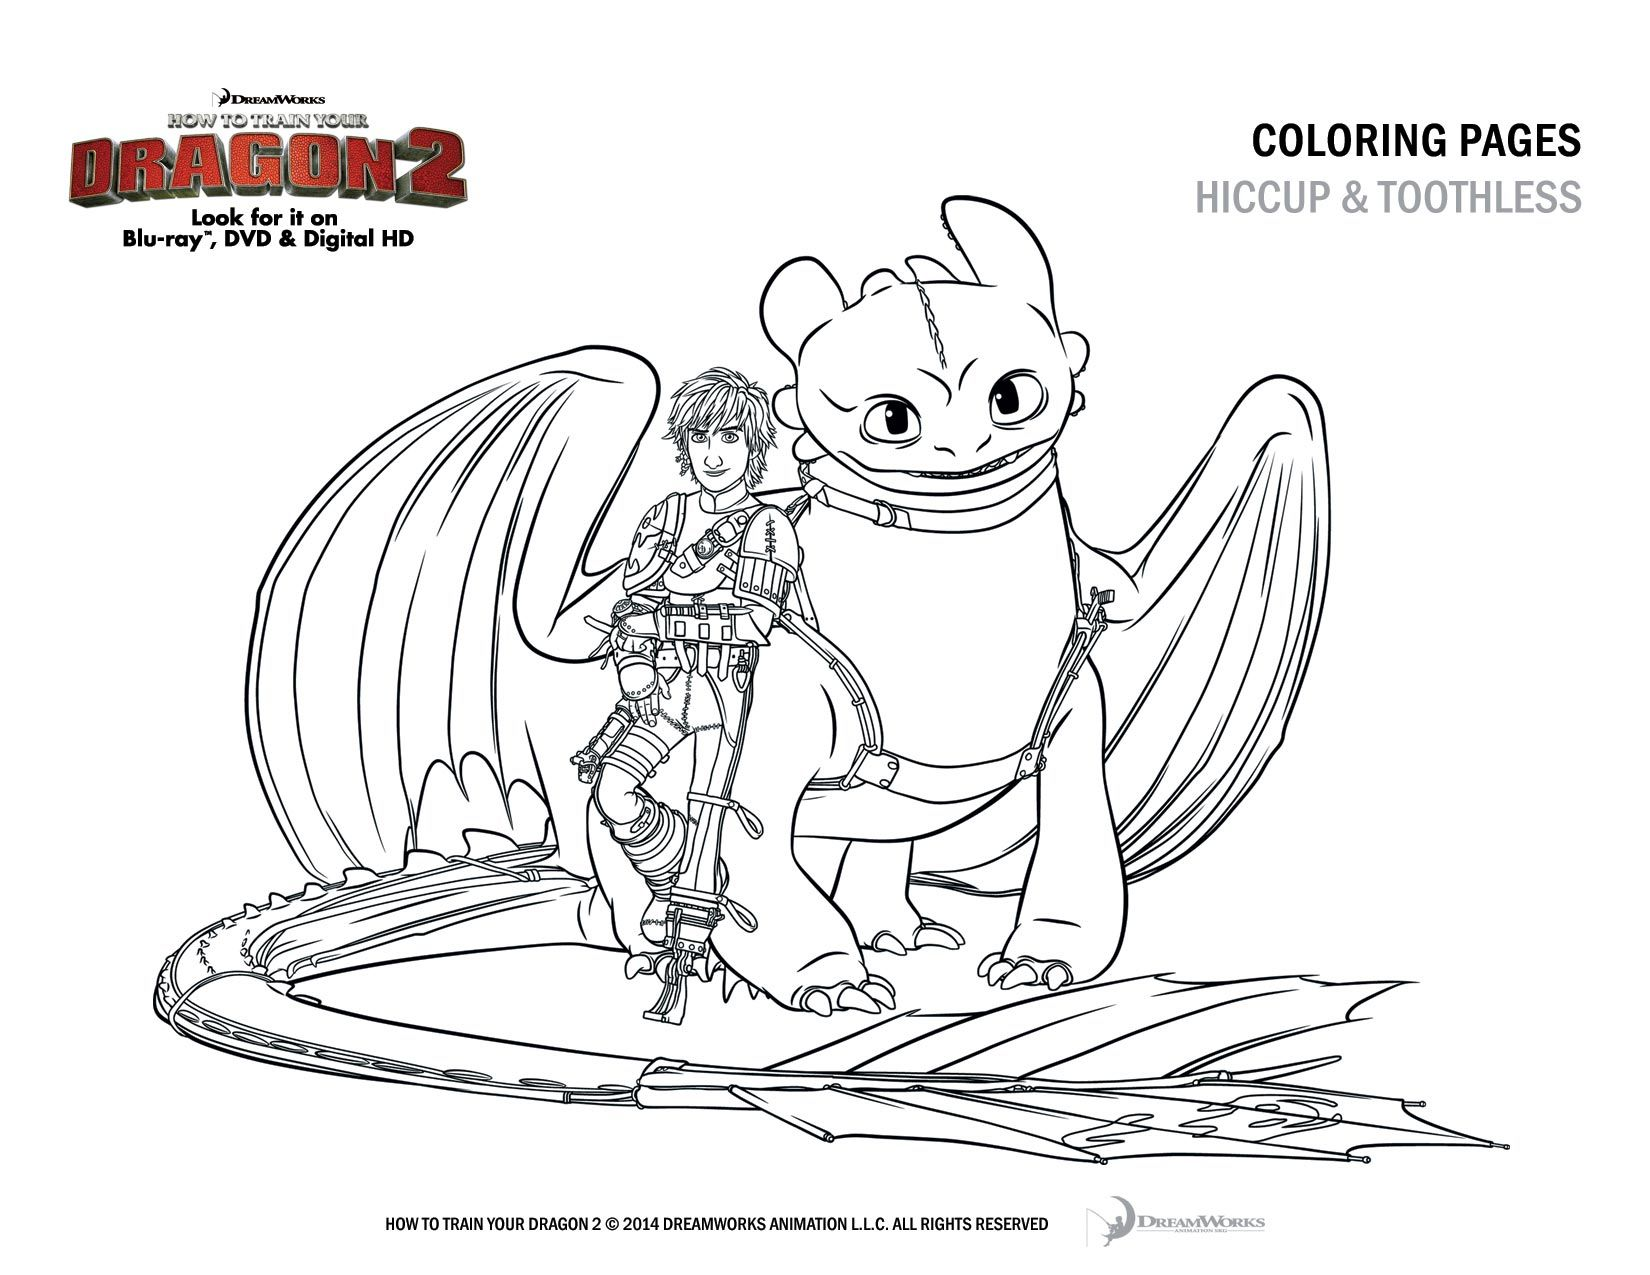 How To Train Your Dragon 2 In Stores Now Printables And A Giveaway DragonsInsiders HTTYD2